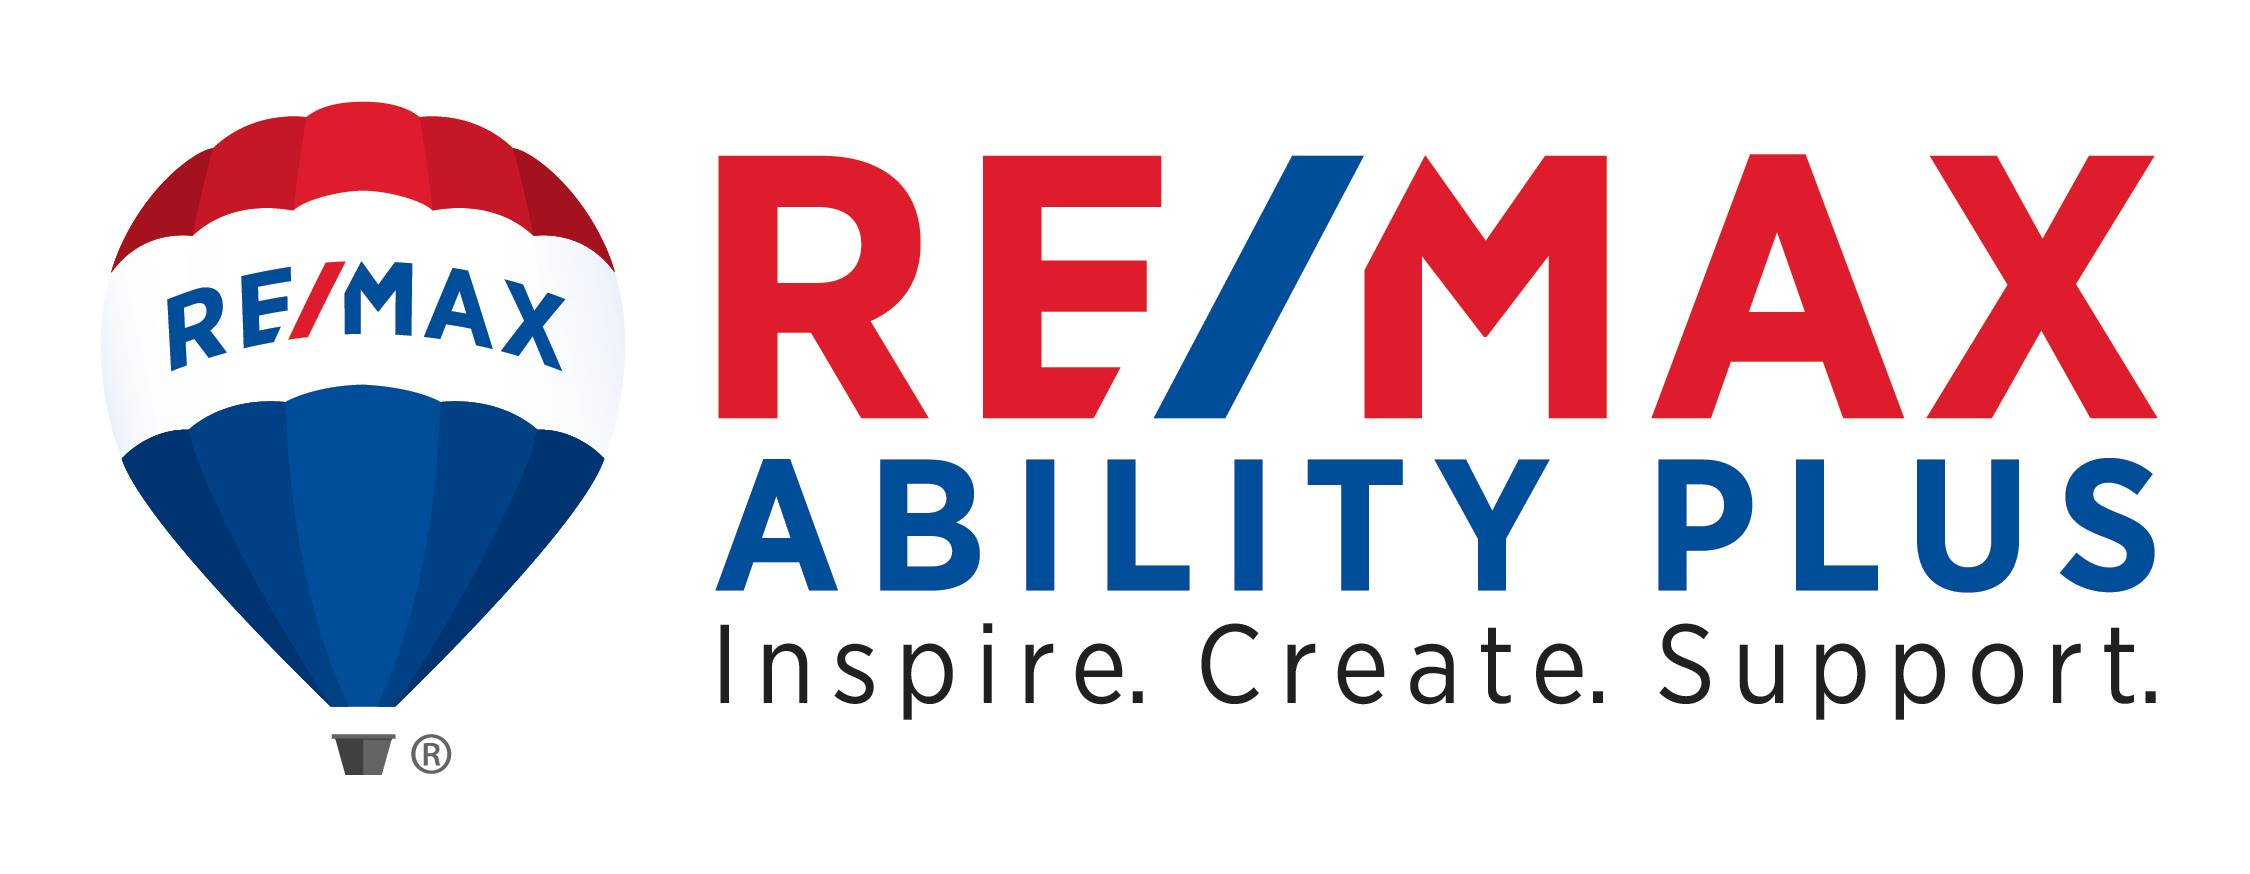 RE/MAX Ability Plus - Heather Robison